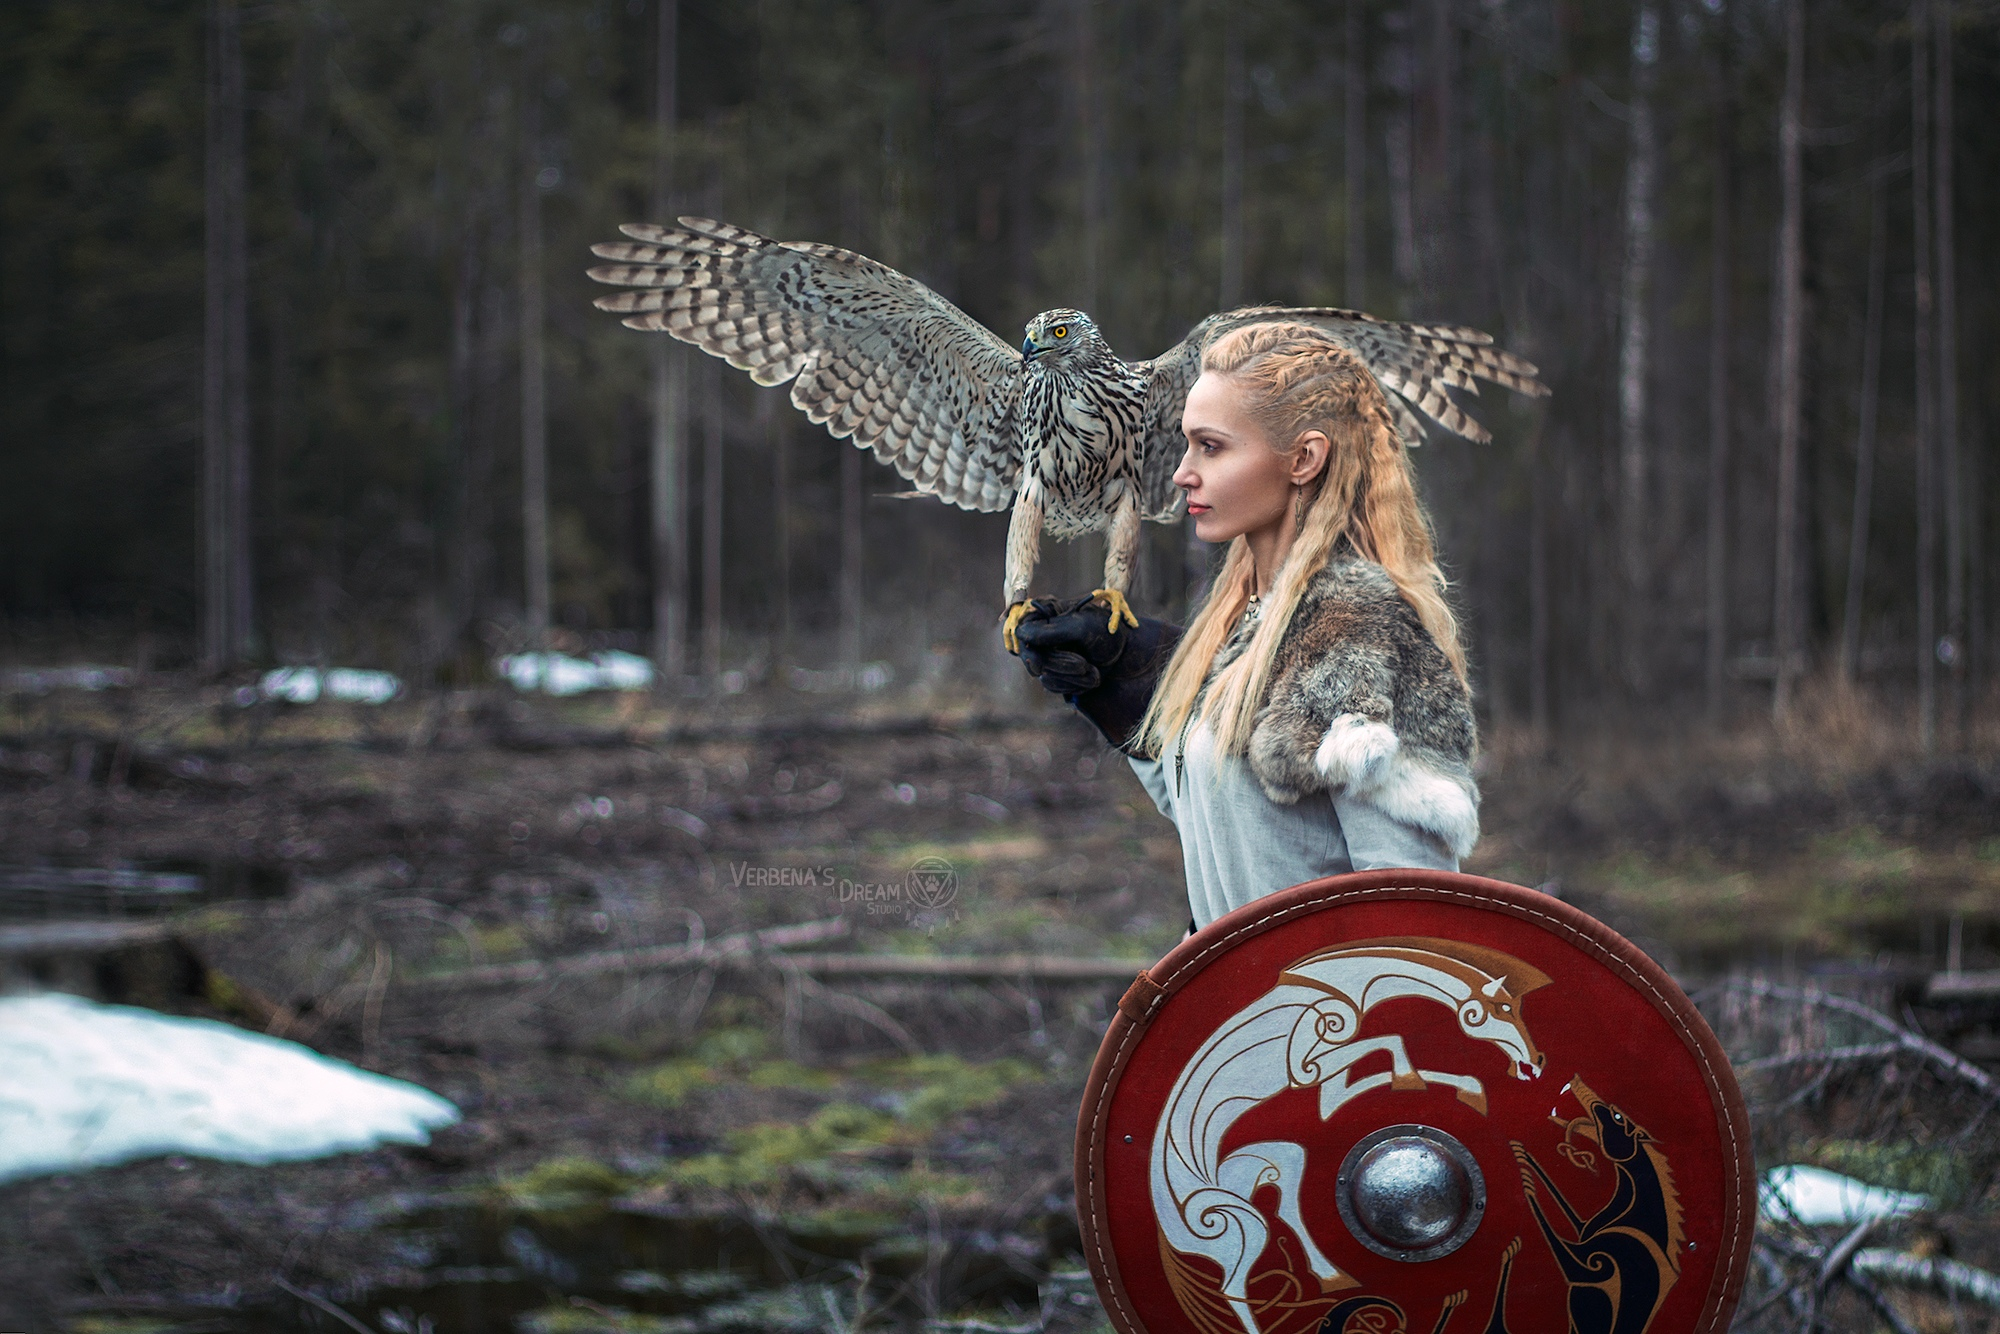 People 2000x1334 Darya Lefler women model blonde braided hair costumes cosplay Vikings shield Shields portrait outdoors eagle birds animals forest trees depth of field women outdoors fantasy girl